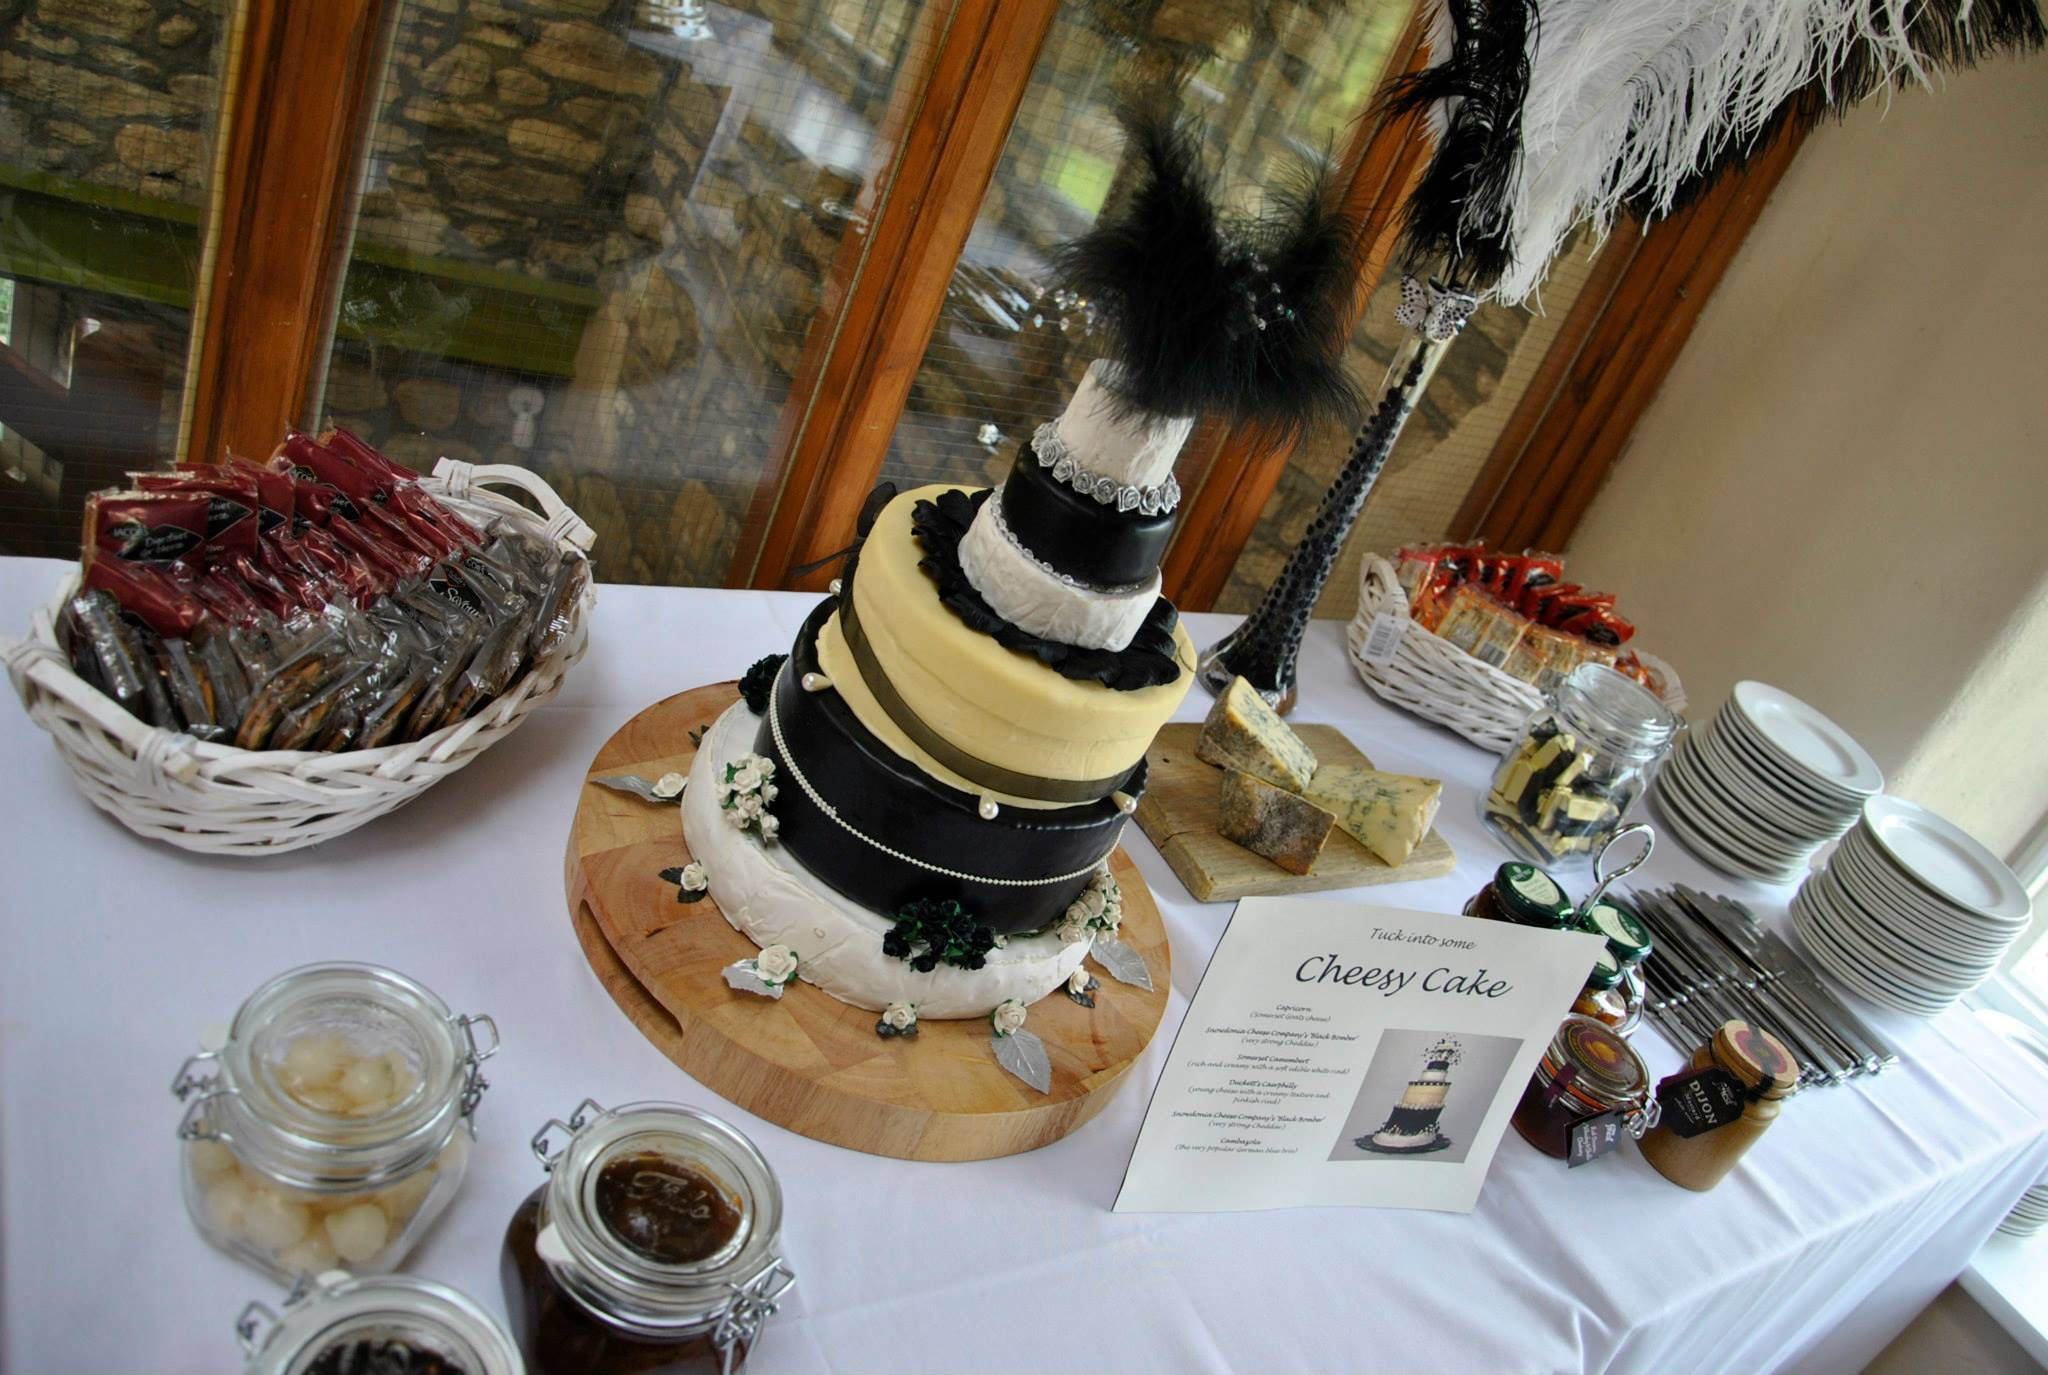 Large wedding cake made of cheese